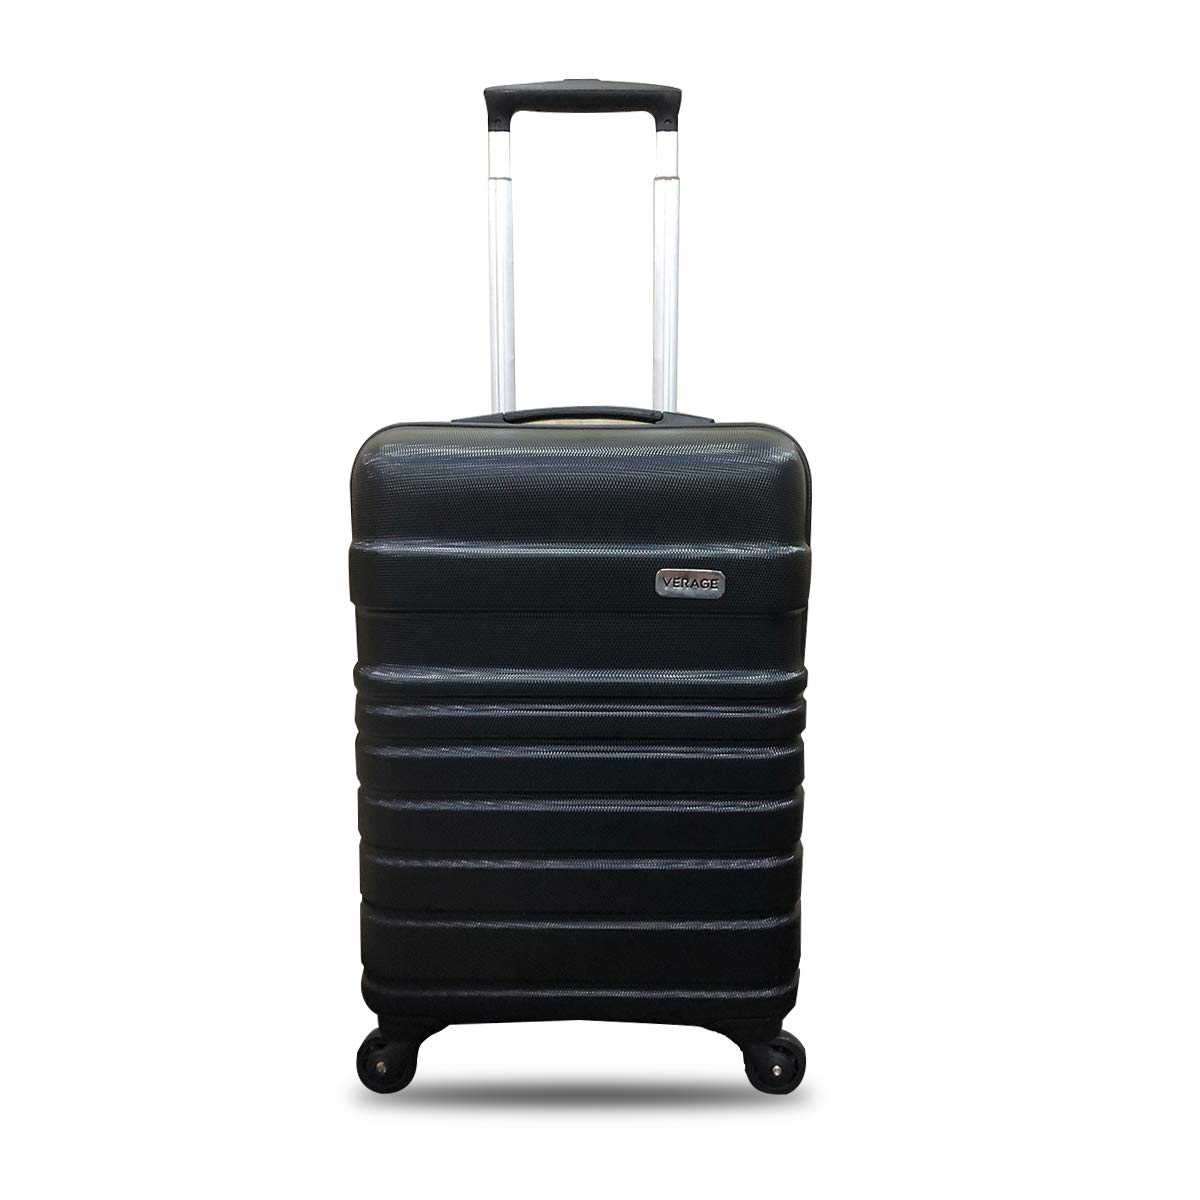 Verage Tokyo 56 cms Black Cabin/Carry-on Trolley 4 Wheels Hard Suitcase Spinner Luggage